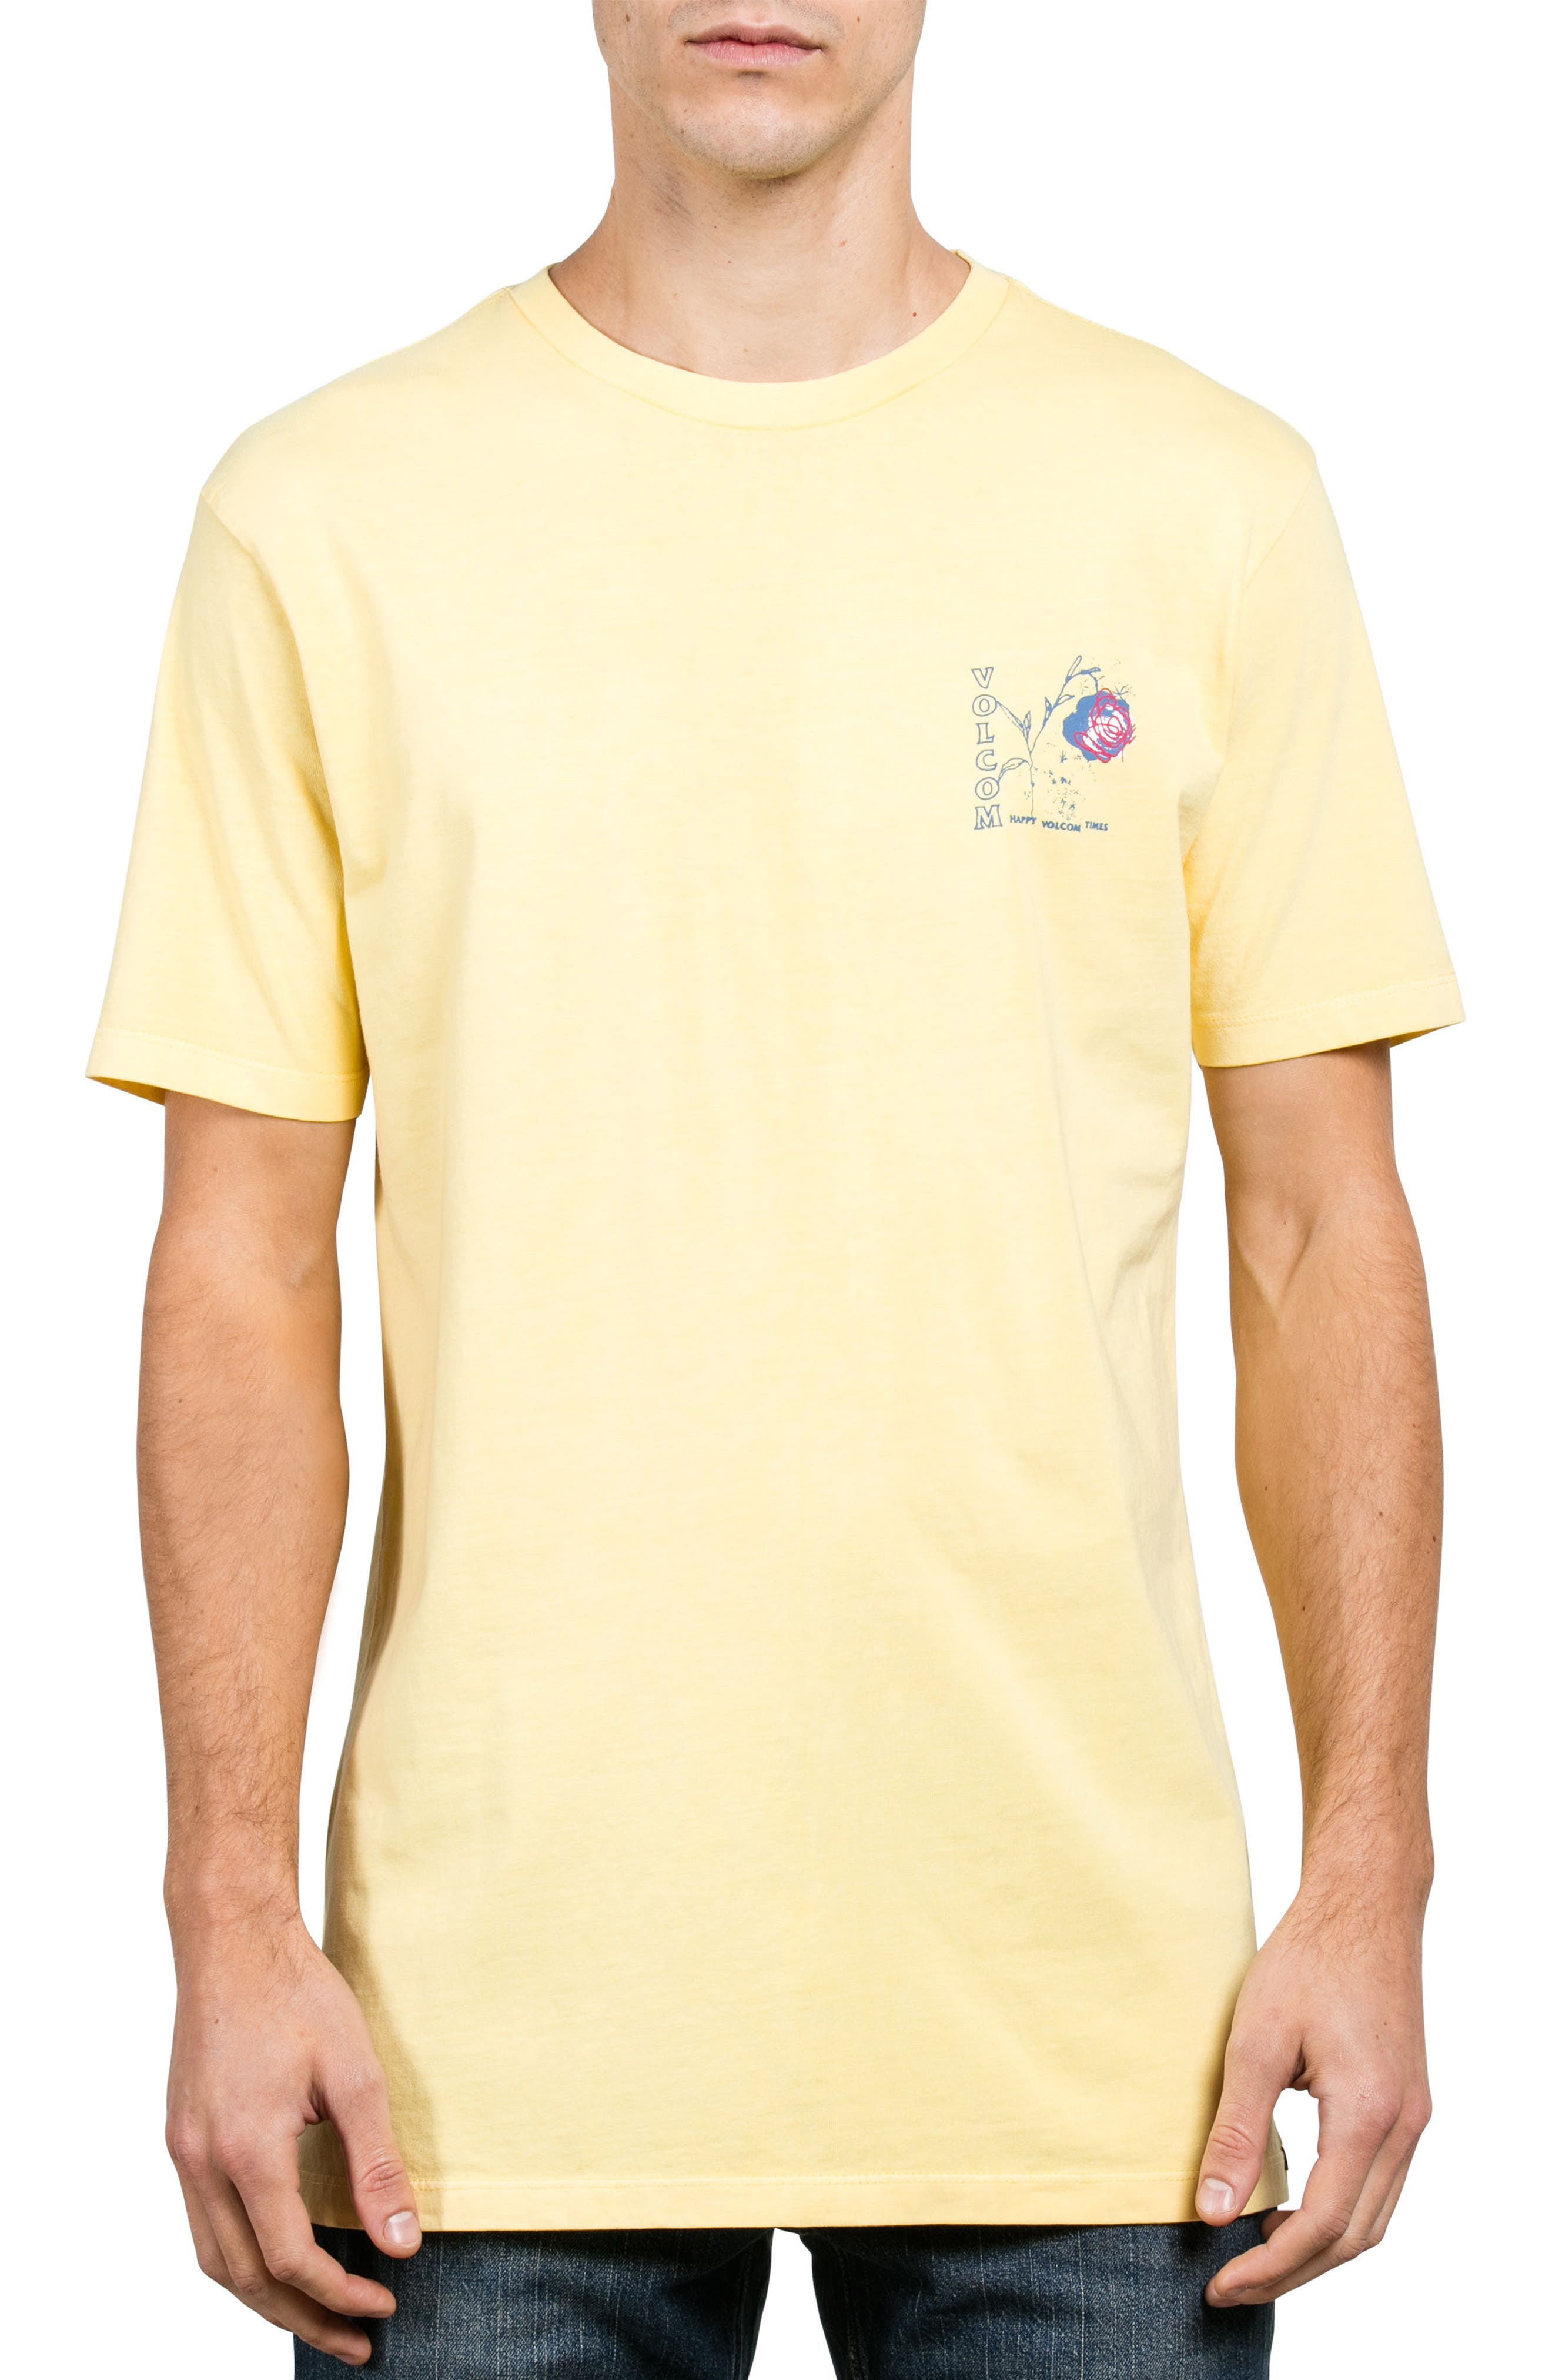 VCO Happy Time Graphic T-Shirt,                             Main thumbnail 1, color,                             740